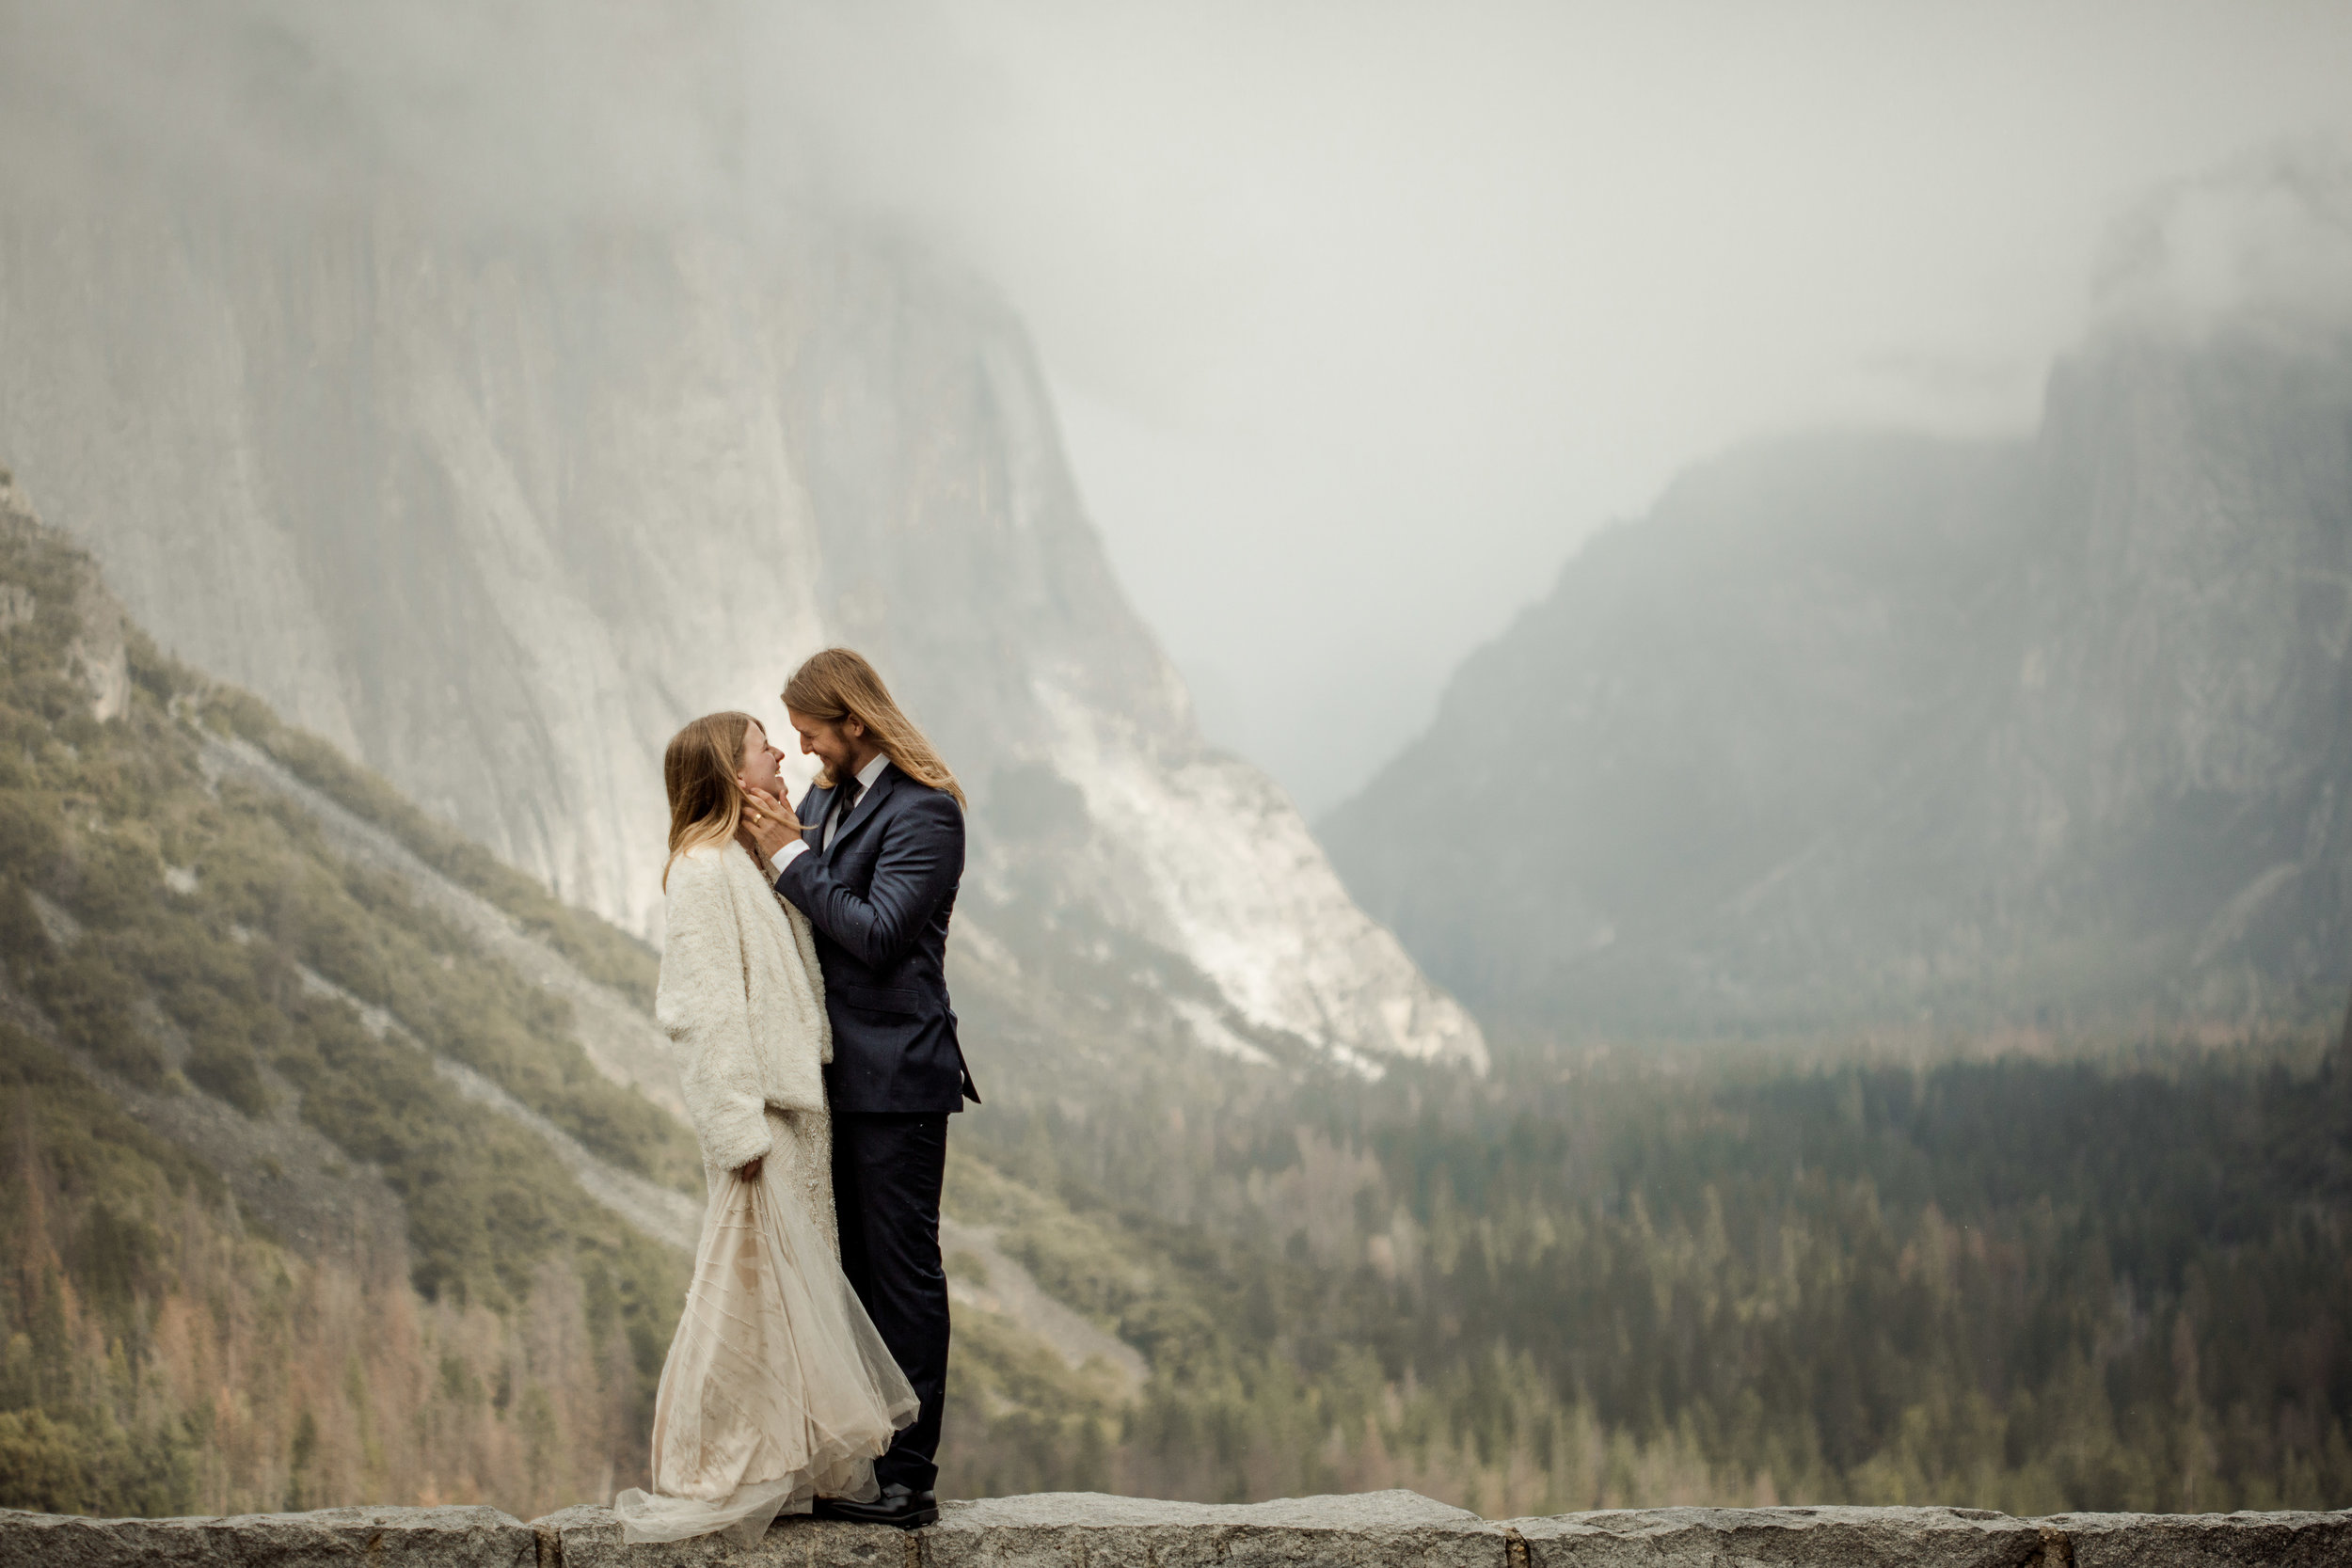 nicole-daacke-photography-yousemite-national-park-elopement-photographer-winter-cloud-moody-elope-inspiration-yosemite-valley-tunnel-view-winter-cloud-fog-weather-wedding-photos-7.jpg